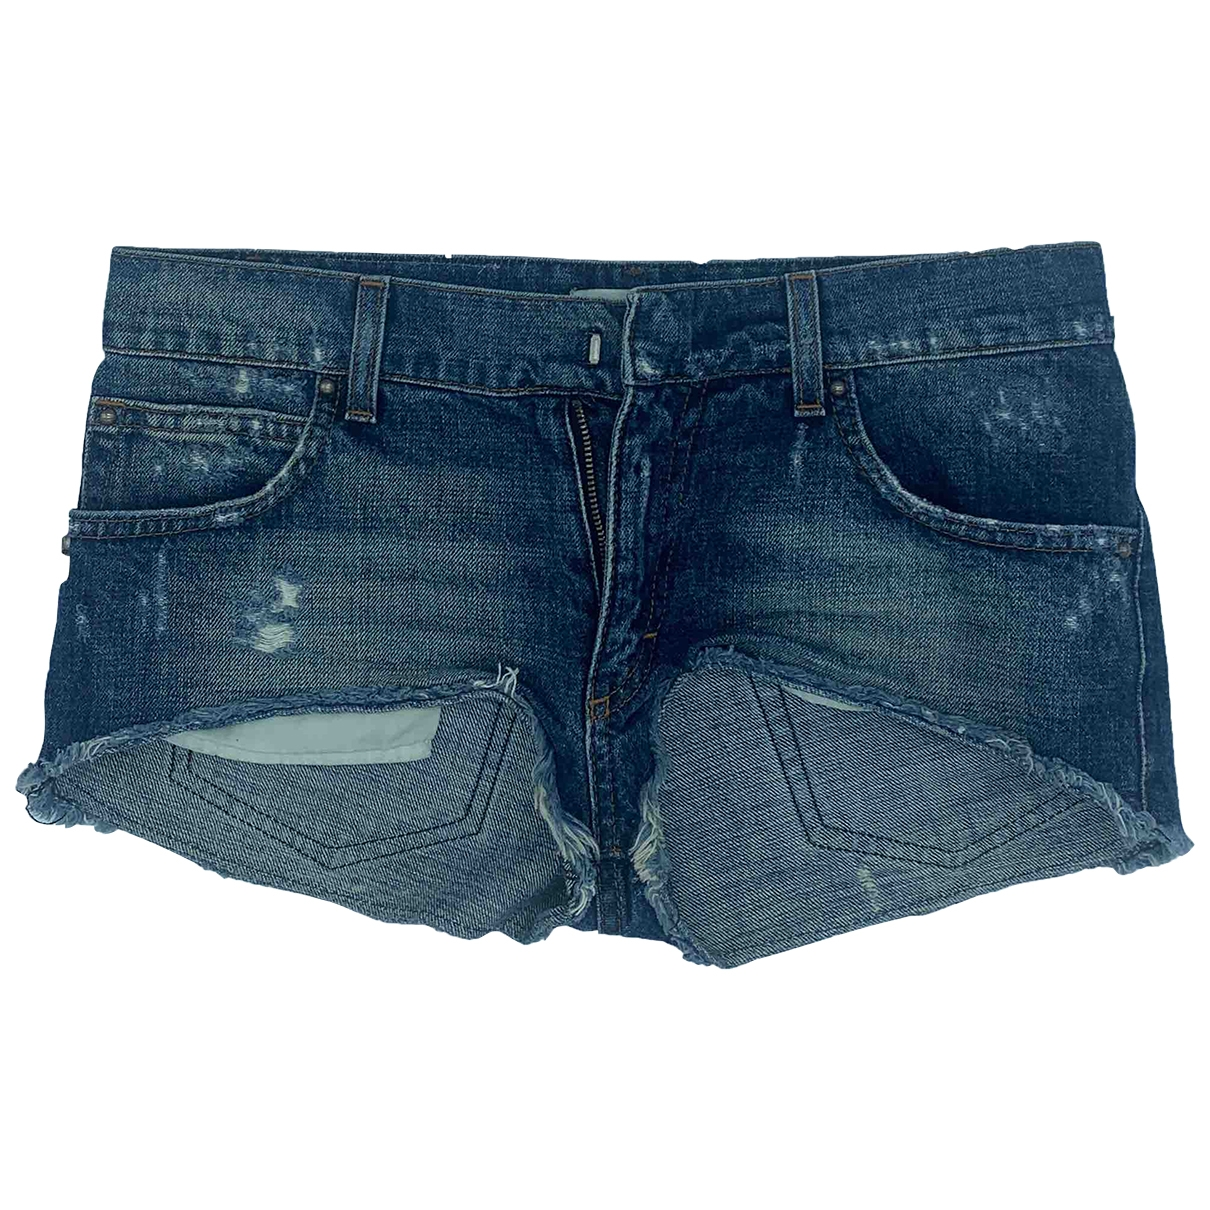 Pierre Balmain \N Shorts in  Blau Denim - Jeans